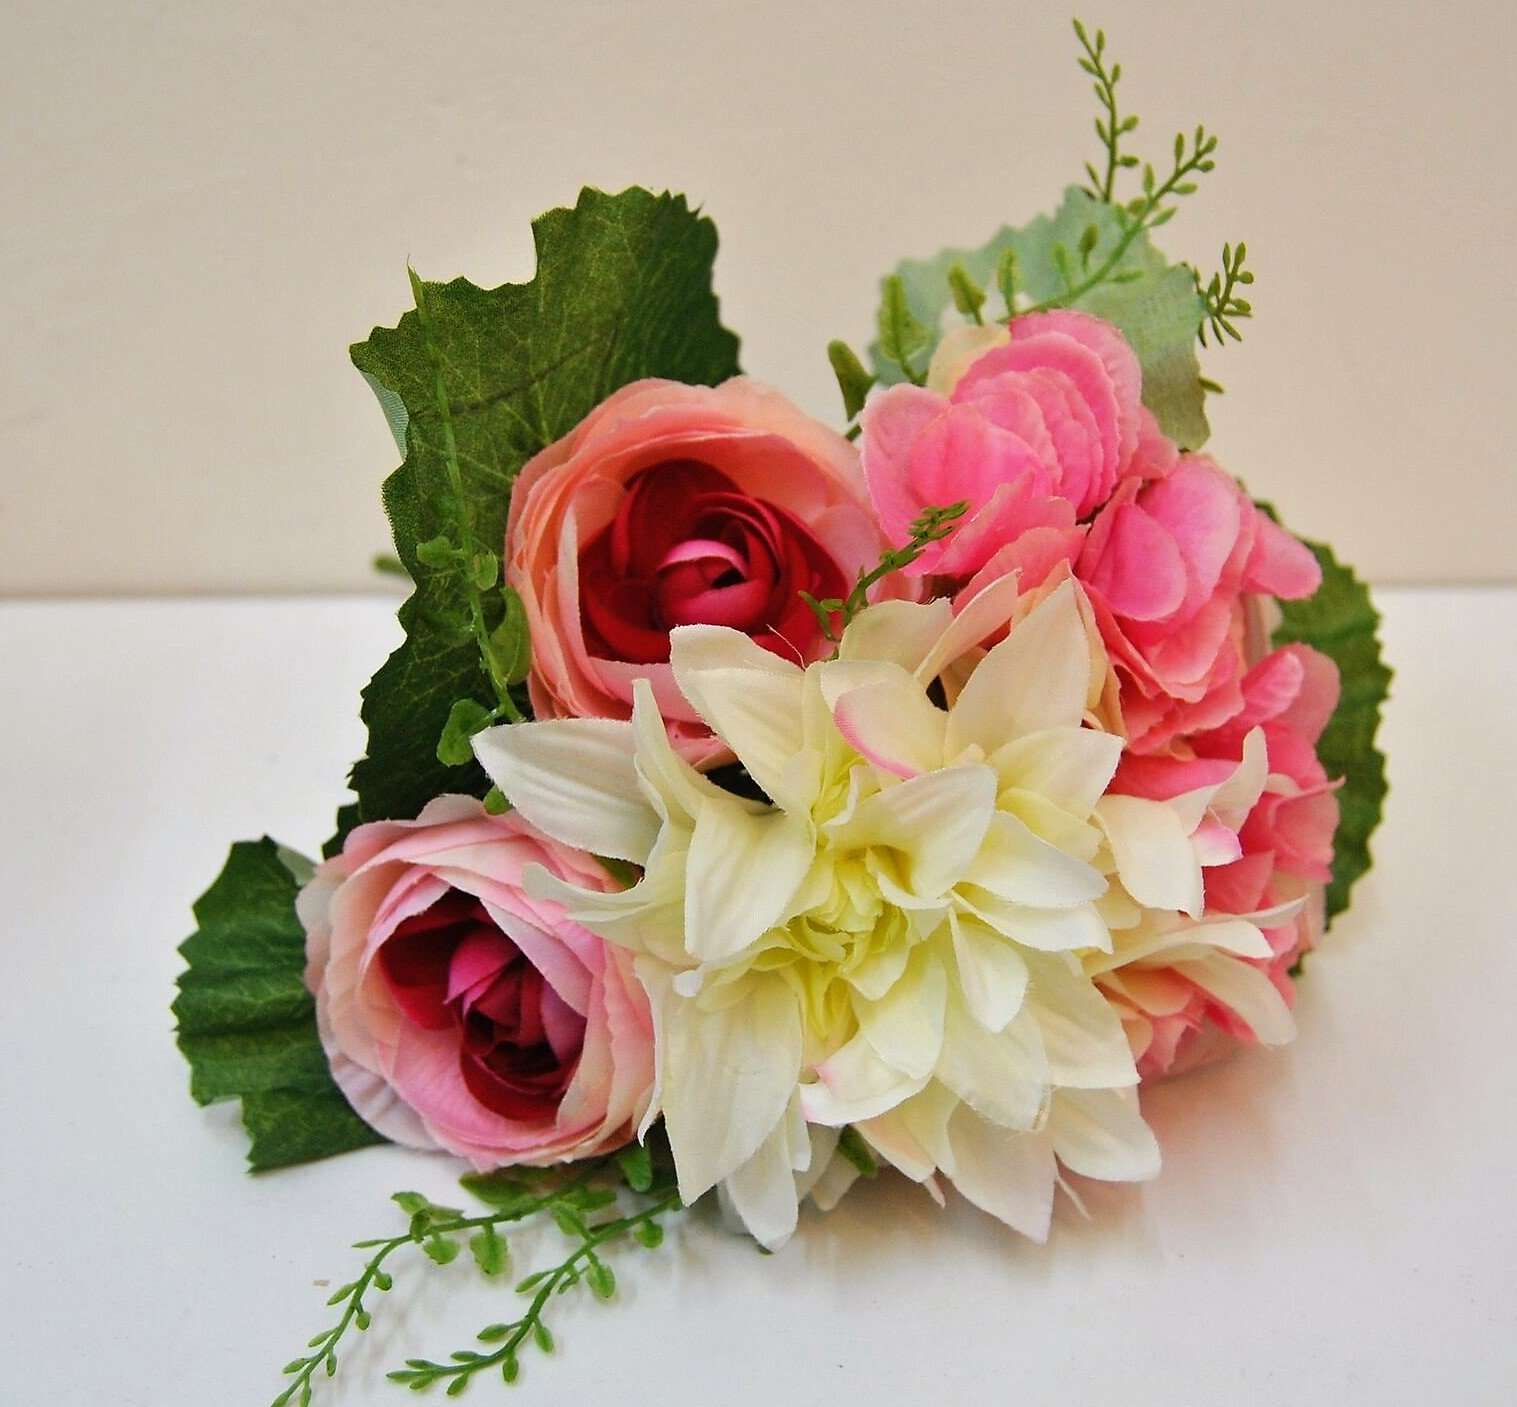 Flower Bouquet Bunch Of Mixed Country Cottage Style Artificial Flower Arrangement Four Seasons Liverpool